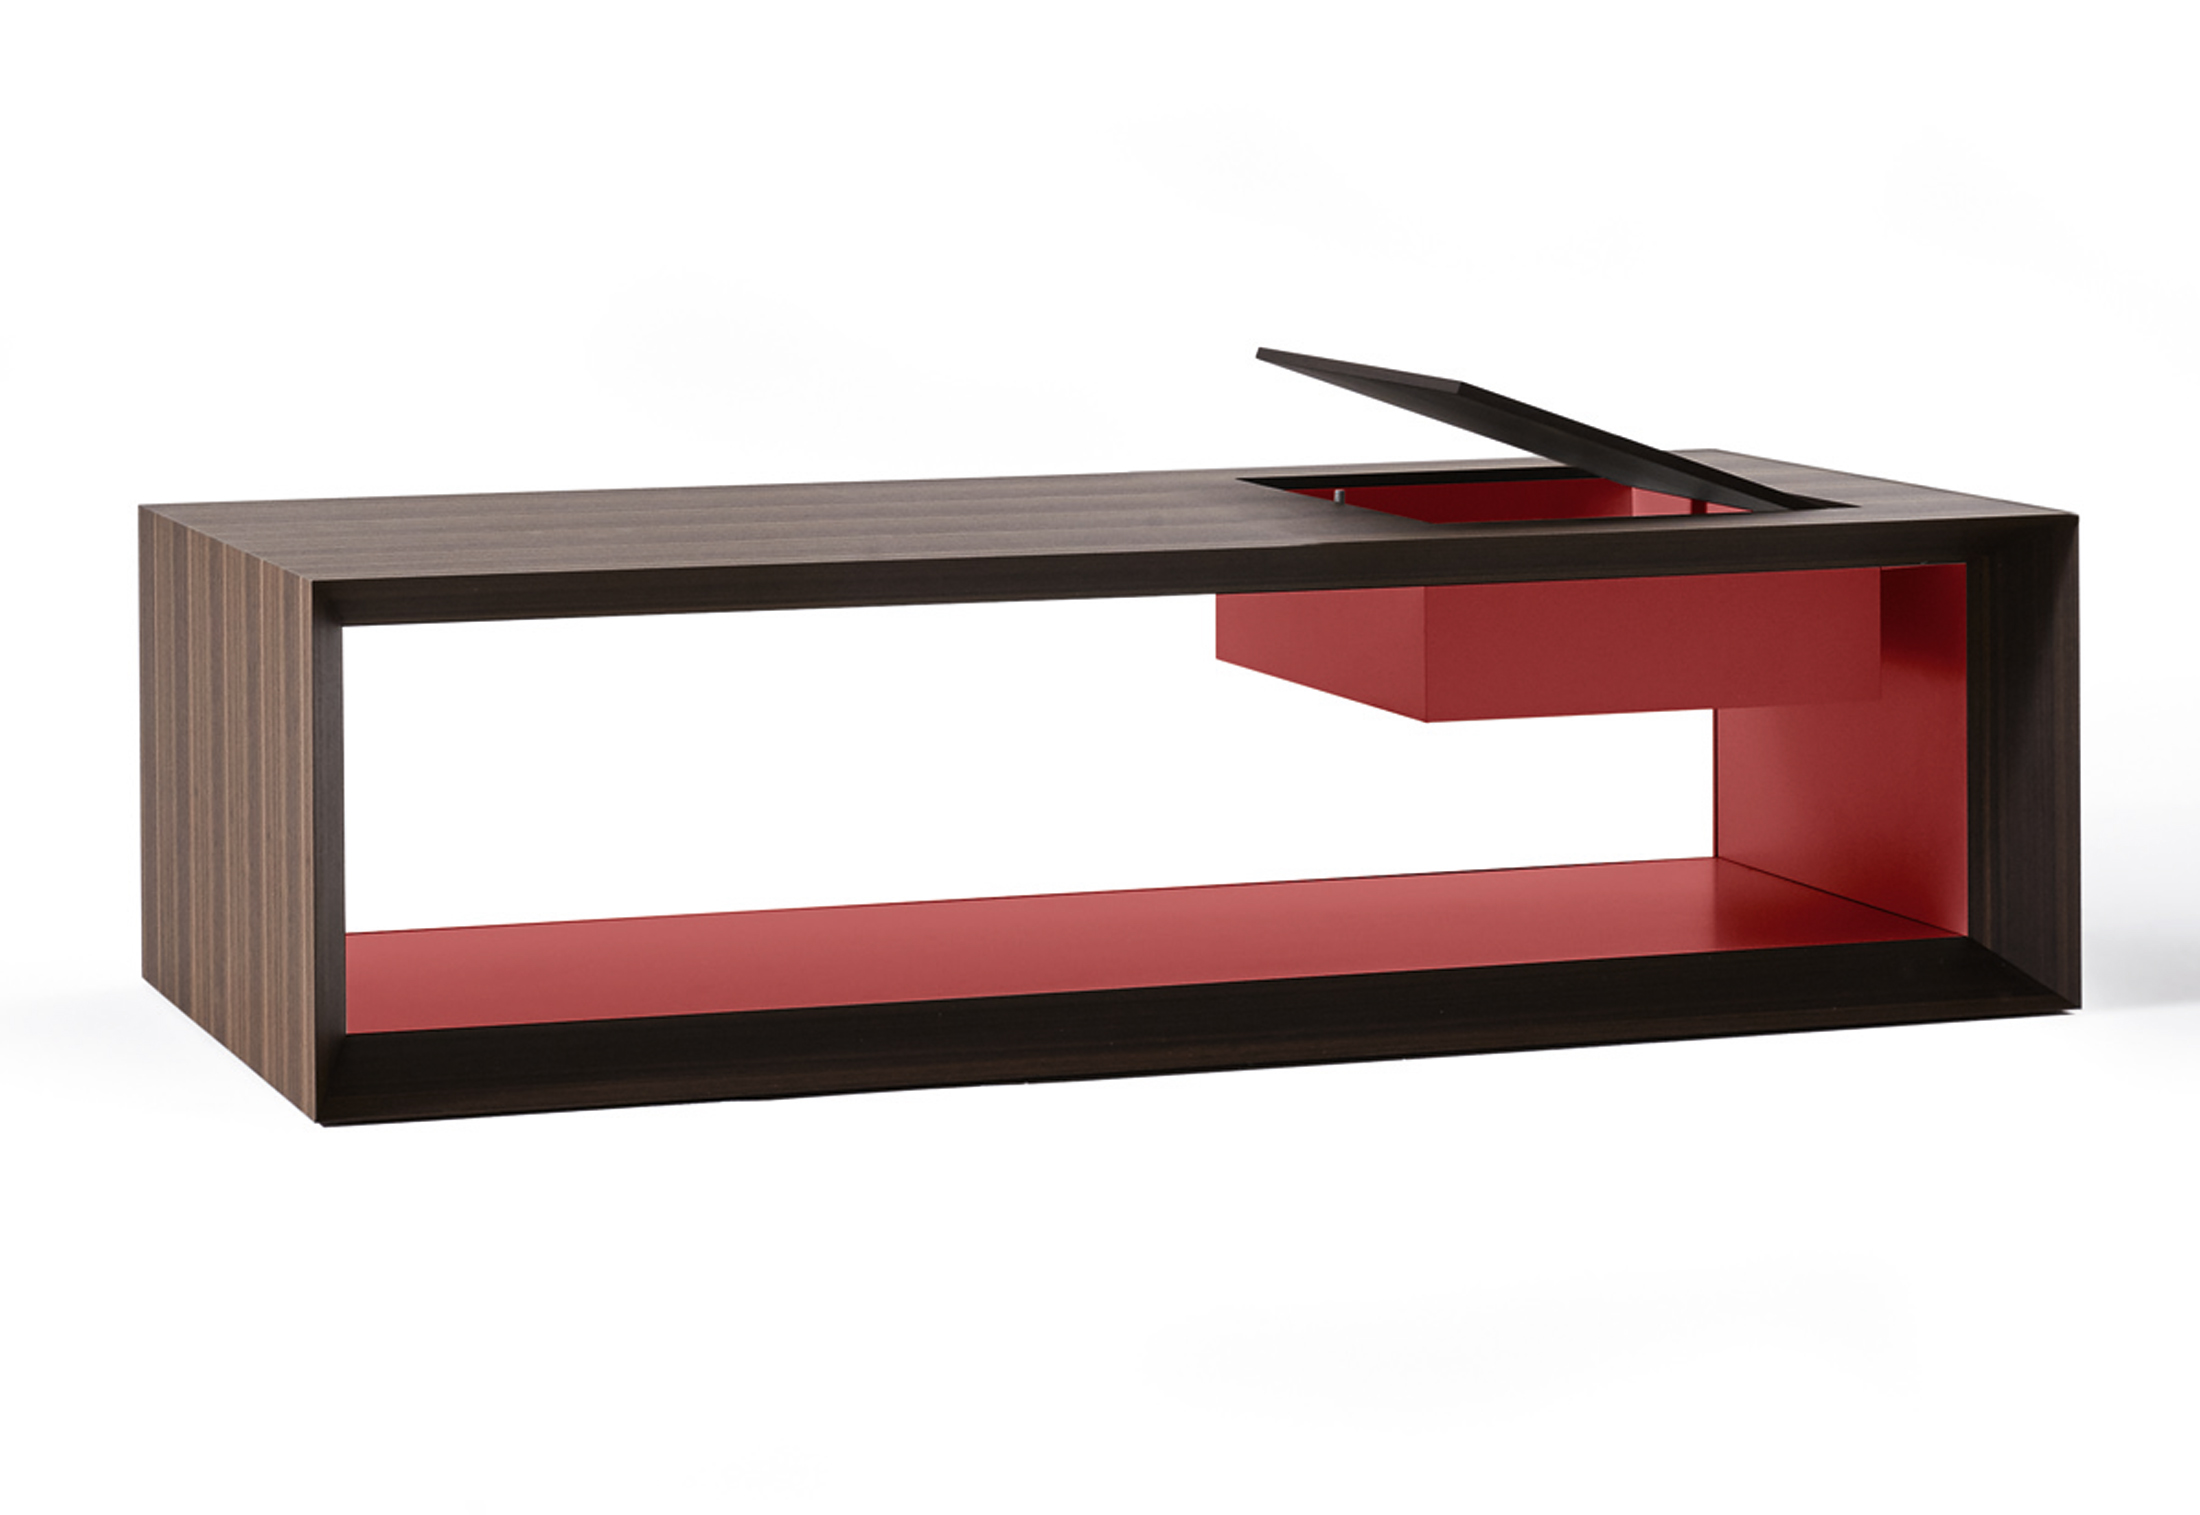 Stage Coffee Table by HOK for Molteni & C